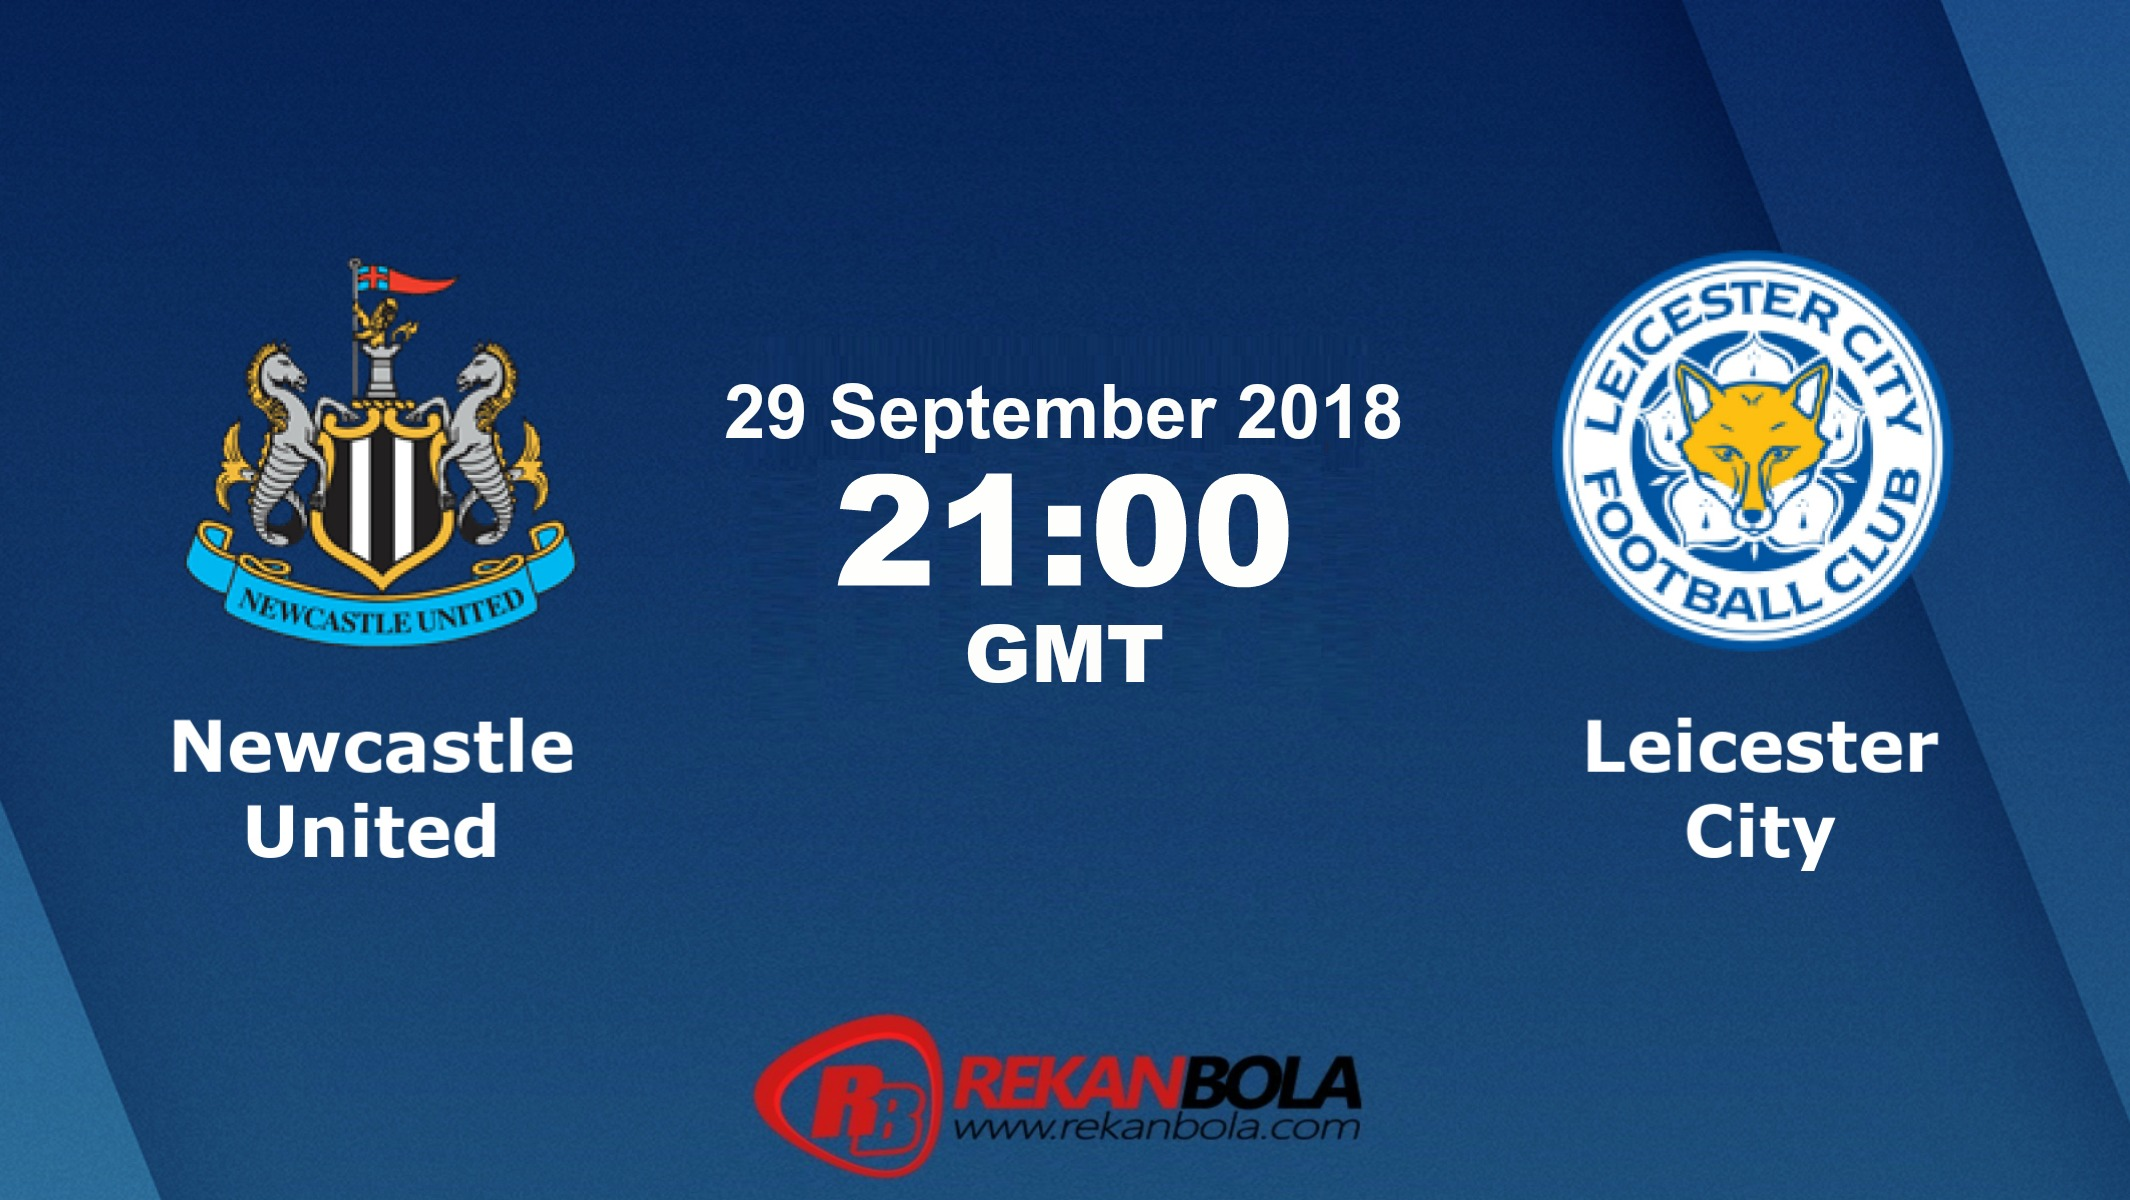 Nonton Siaran Live Streaming Newcastle Vs Leicester 29 September 2018